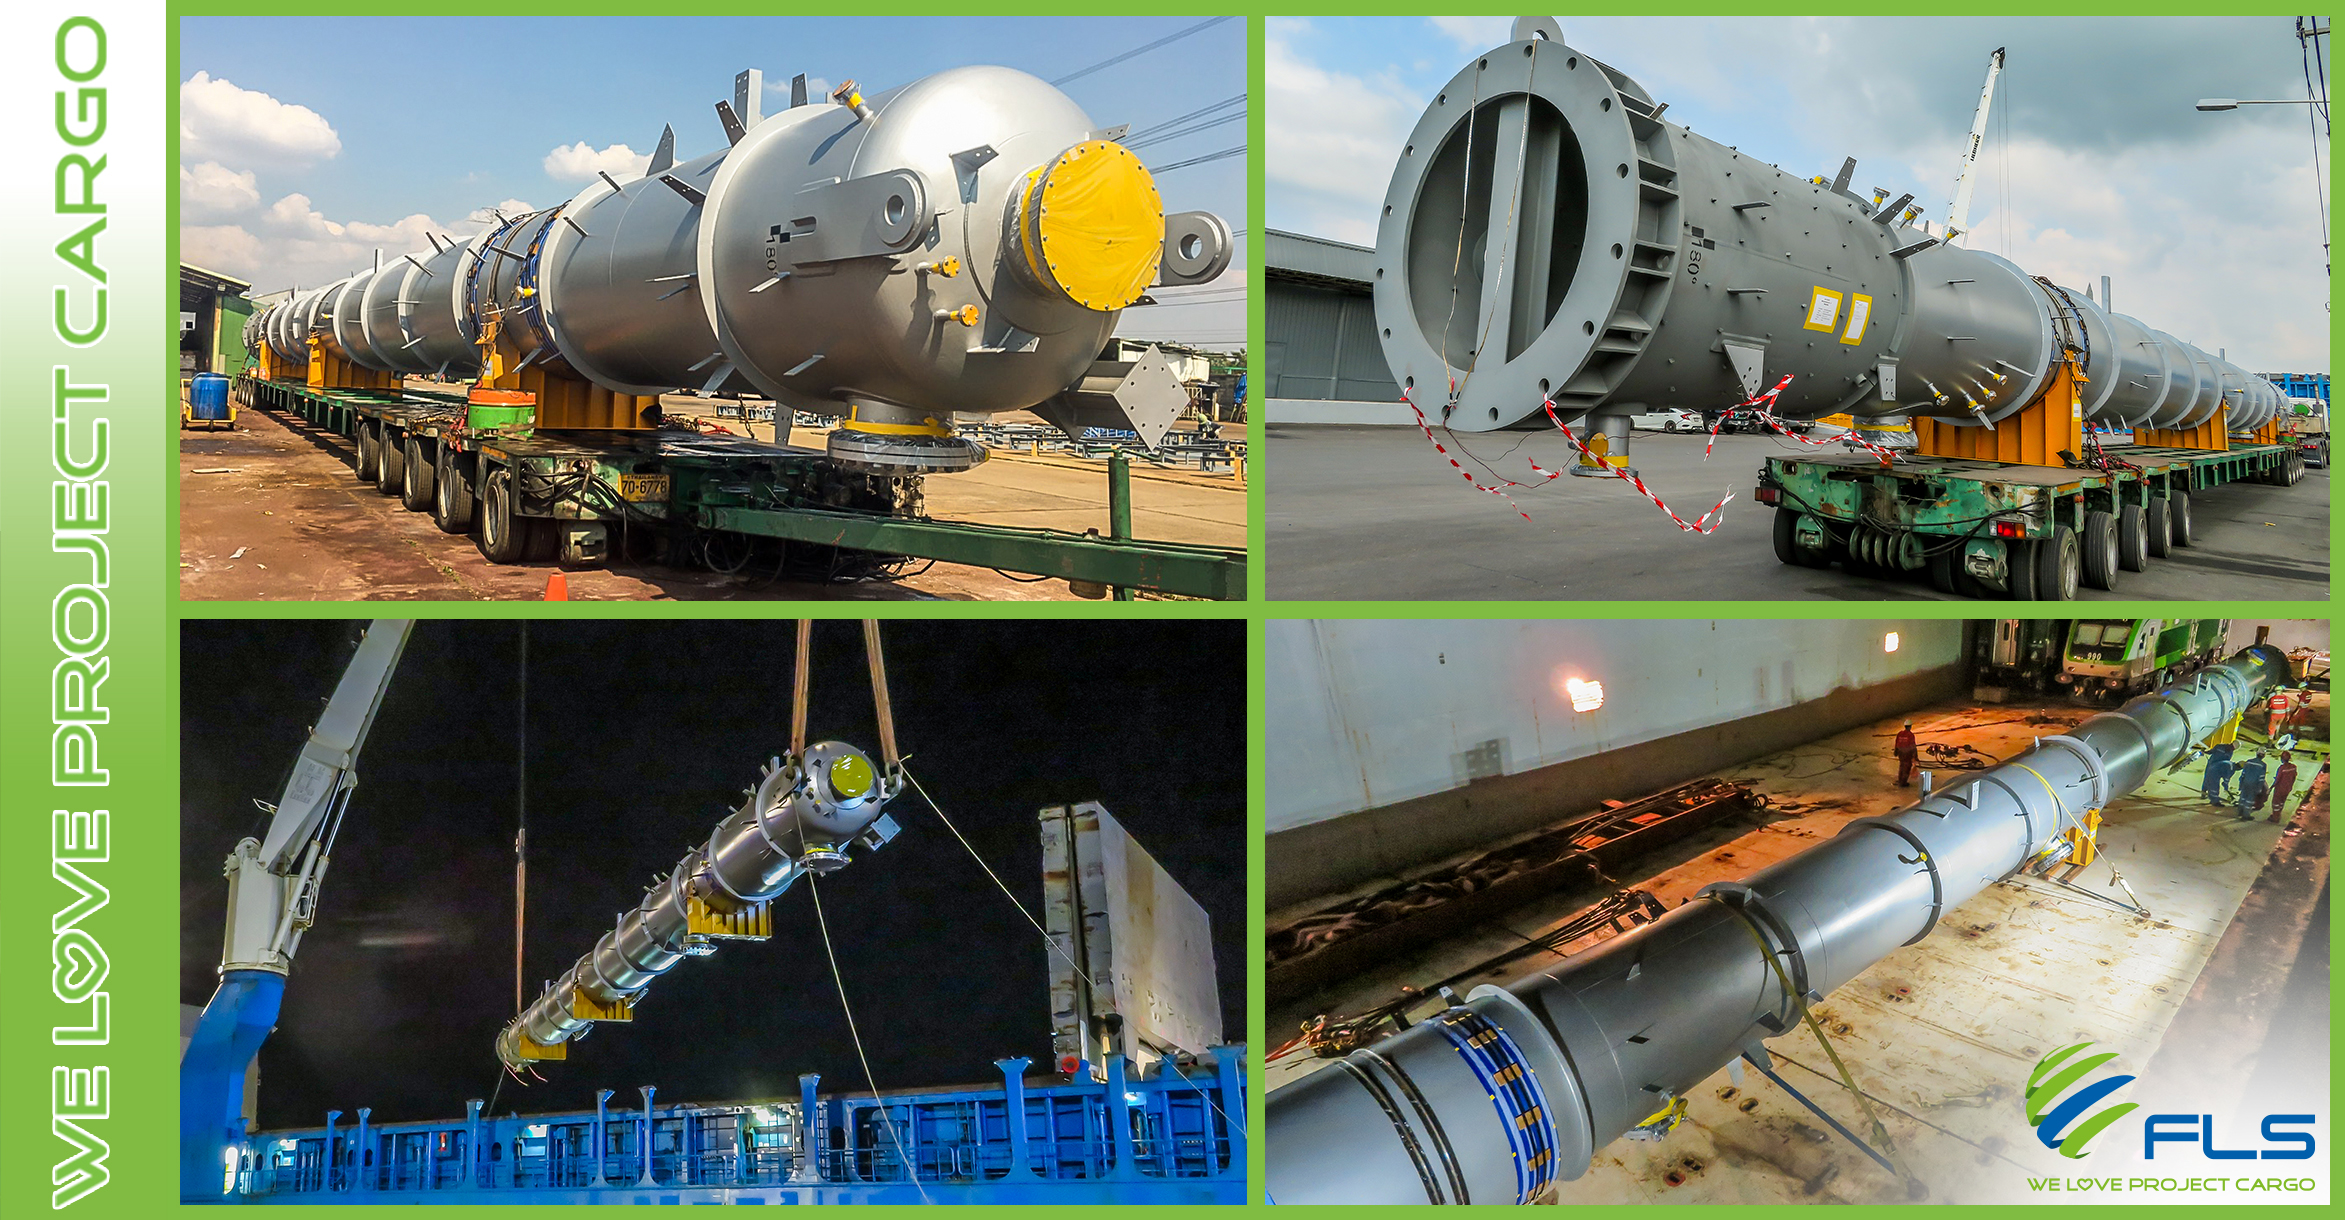 FLS Thailand Delivering a 40 meters Long Purification Tower from Thailand to Singapore